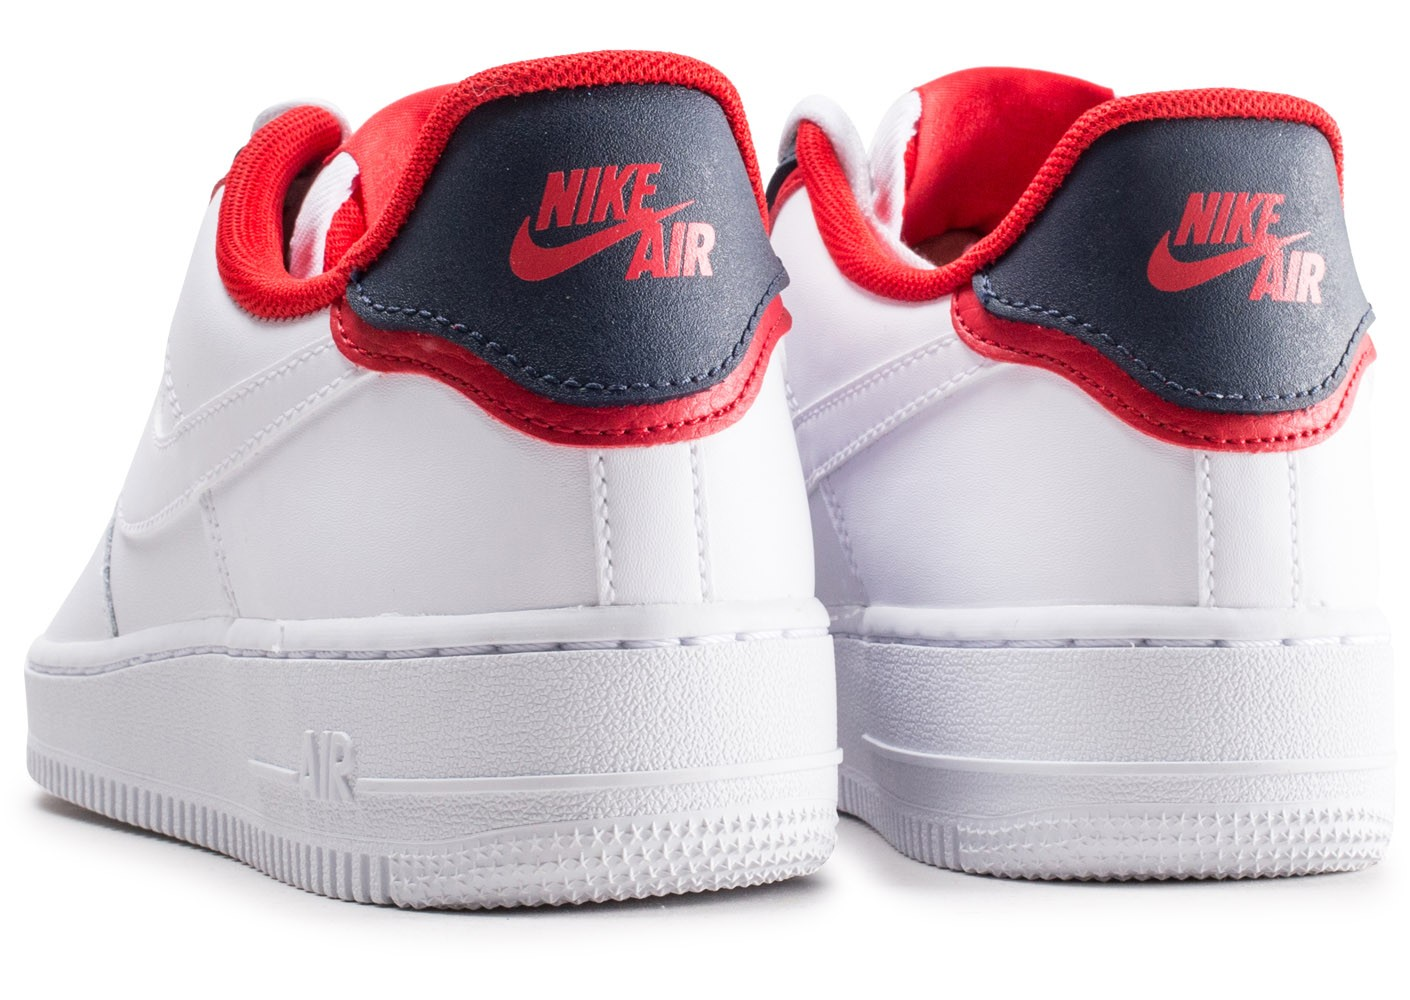 Nike Air Force 1'07 LV8 blanche bleue et rouge Chaussures